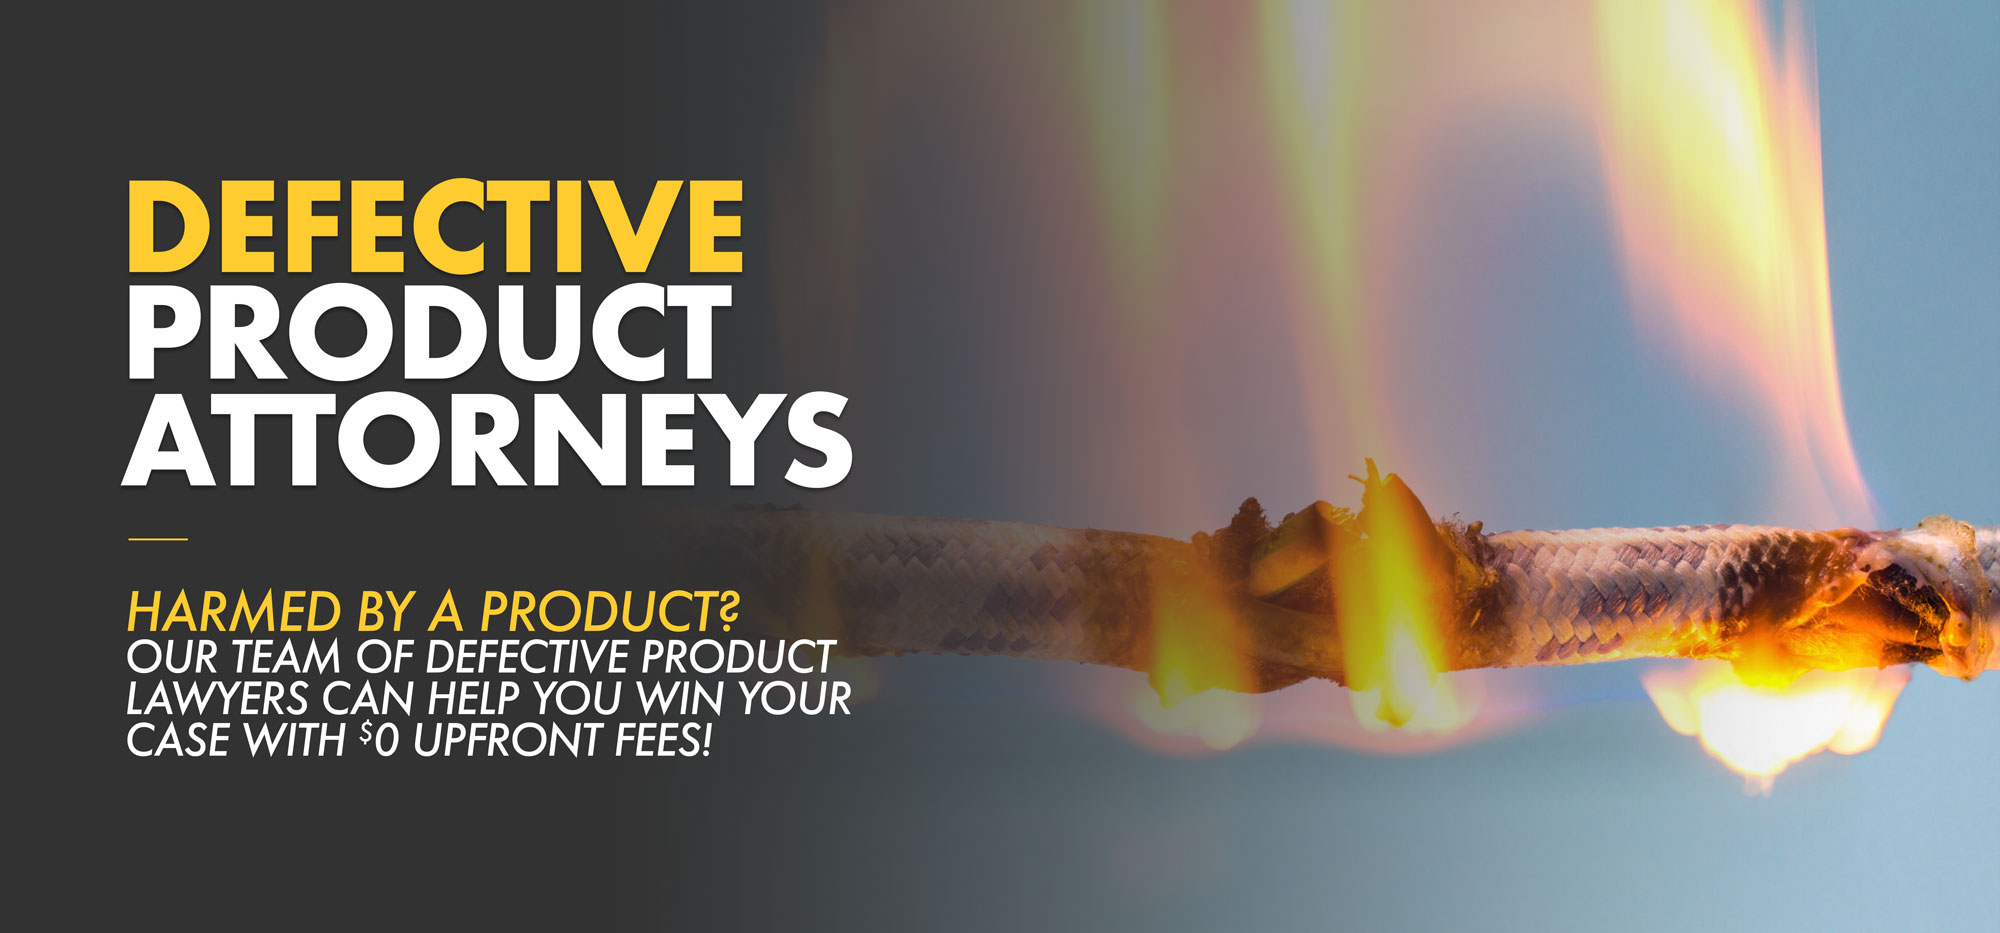 defective-products-banner